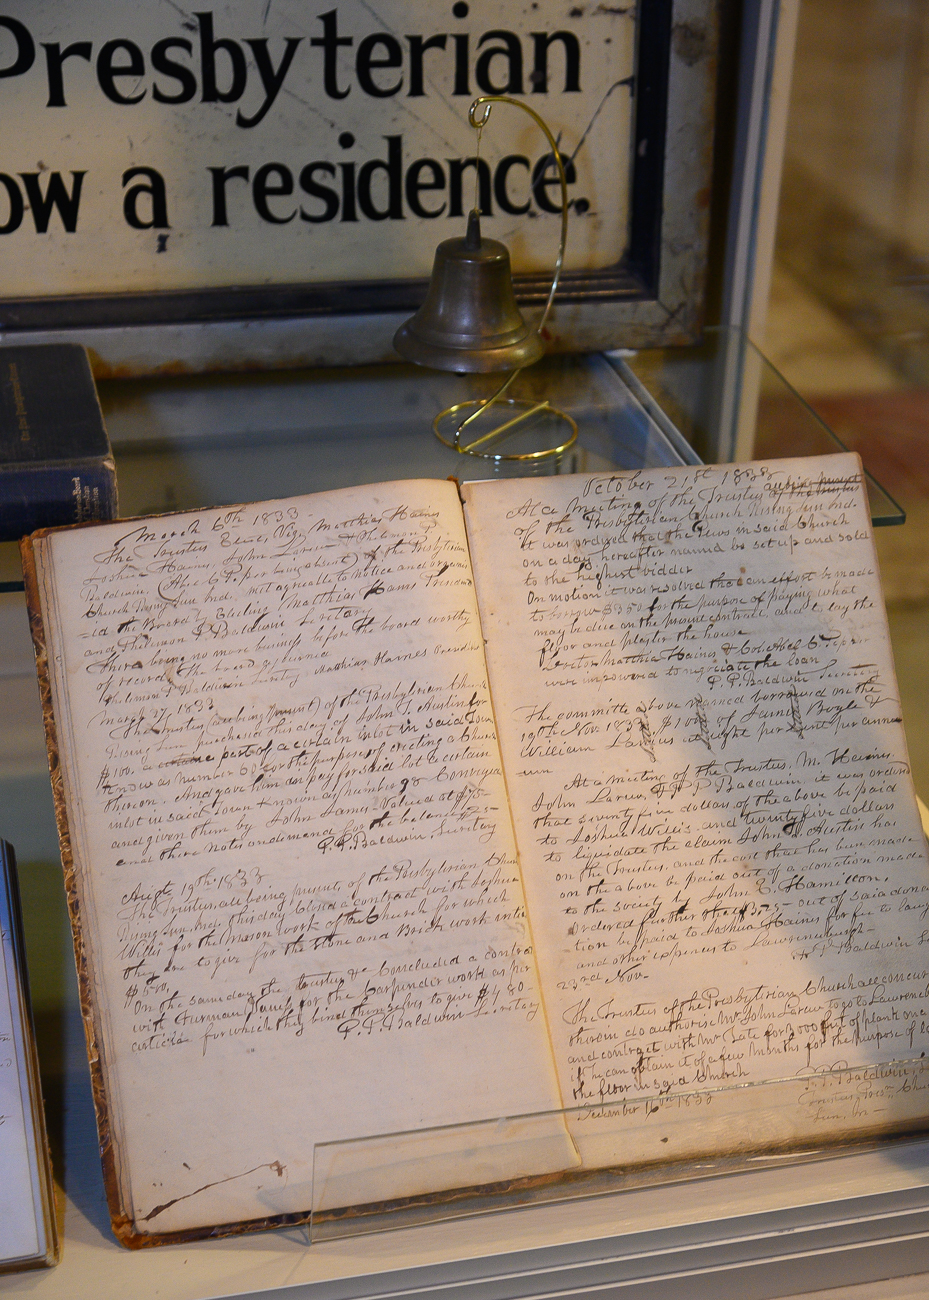 An entire display case is dedicated to the Presbyterian church down the street from the museum. Originally built in 1832, it had a seminary early on that taught teachers and sent them out west. Though the church disbanded in the 1880s, the museum has physical records and documents from its time as a church on display. / Image: Phil Armstrong, Cincinnati Refined // Published: 1.7.20